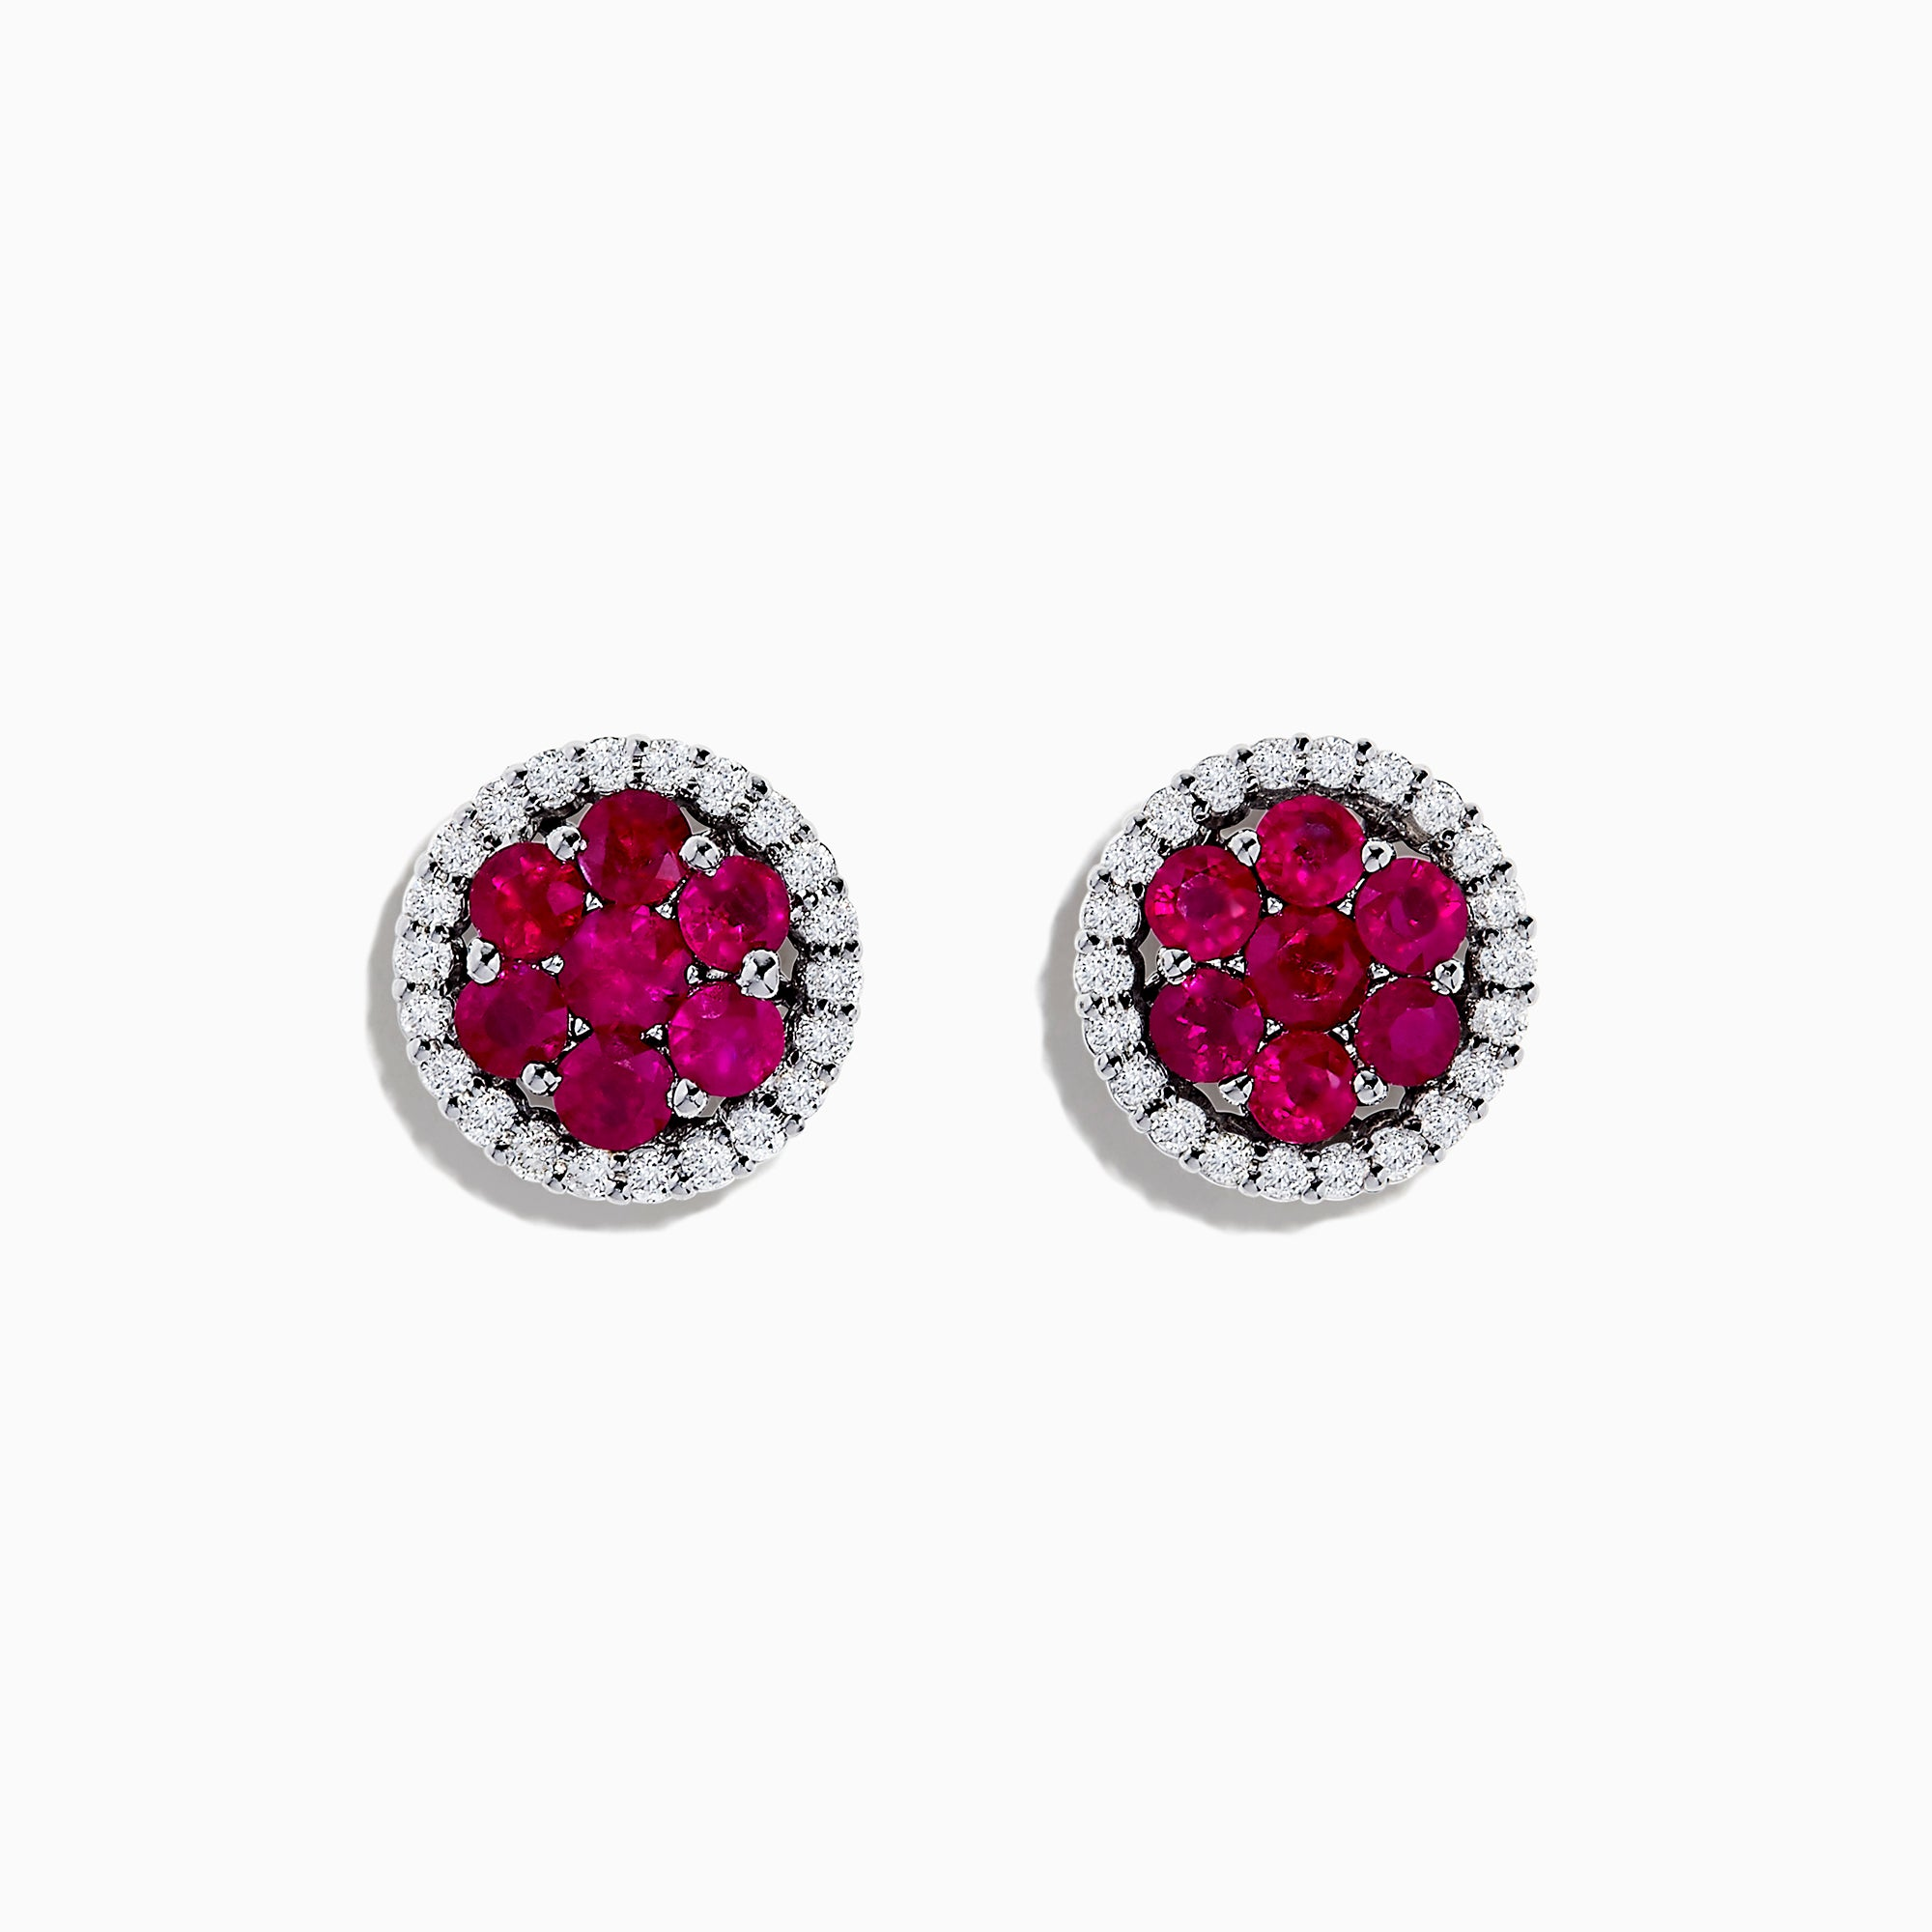 18K White Gold Ruby and Diamond Stud Earrings, 1.76 TCW